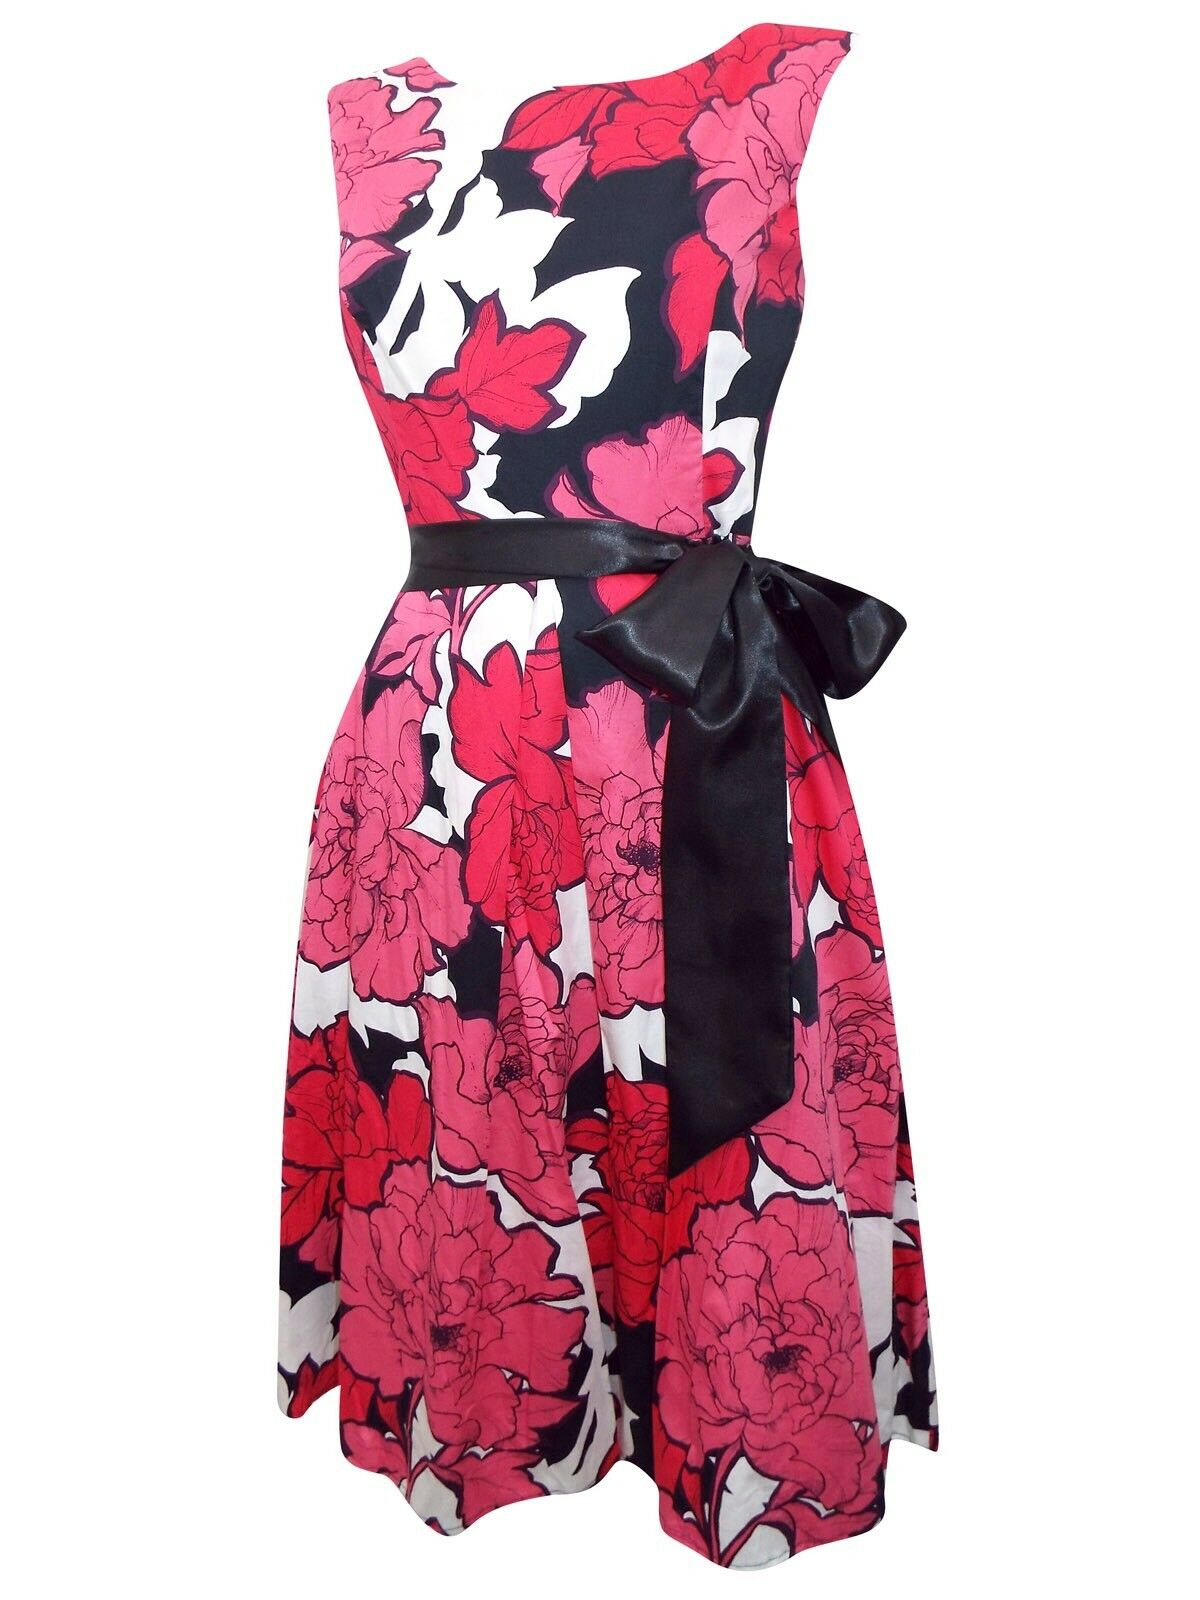 DEBENHAMS TEA DRESS PROM SUMMER RETRO 50'S PINK FLORAL DRESS SIZE 8